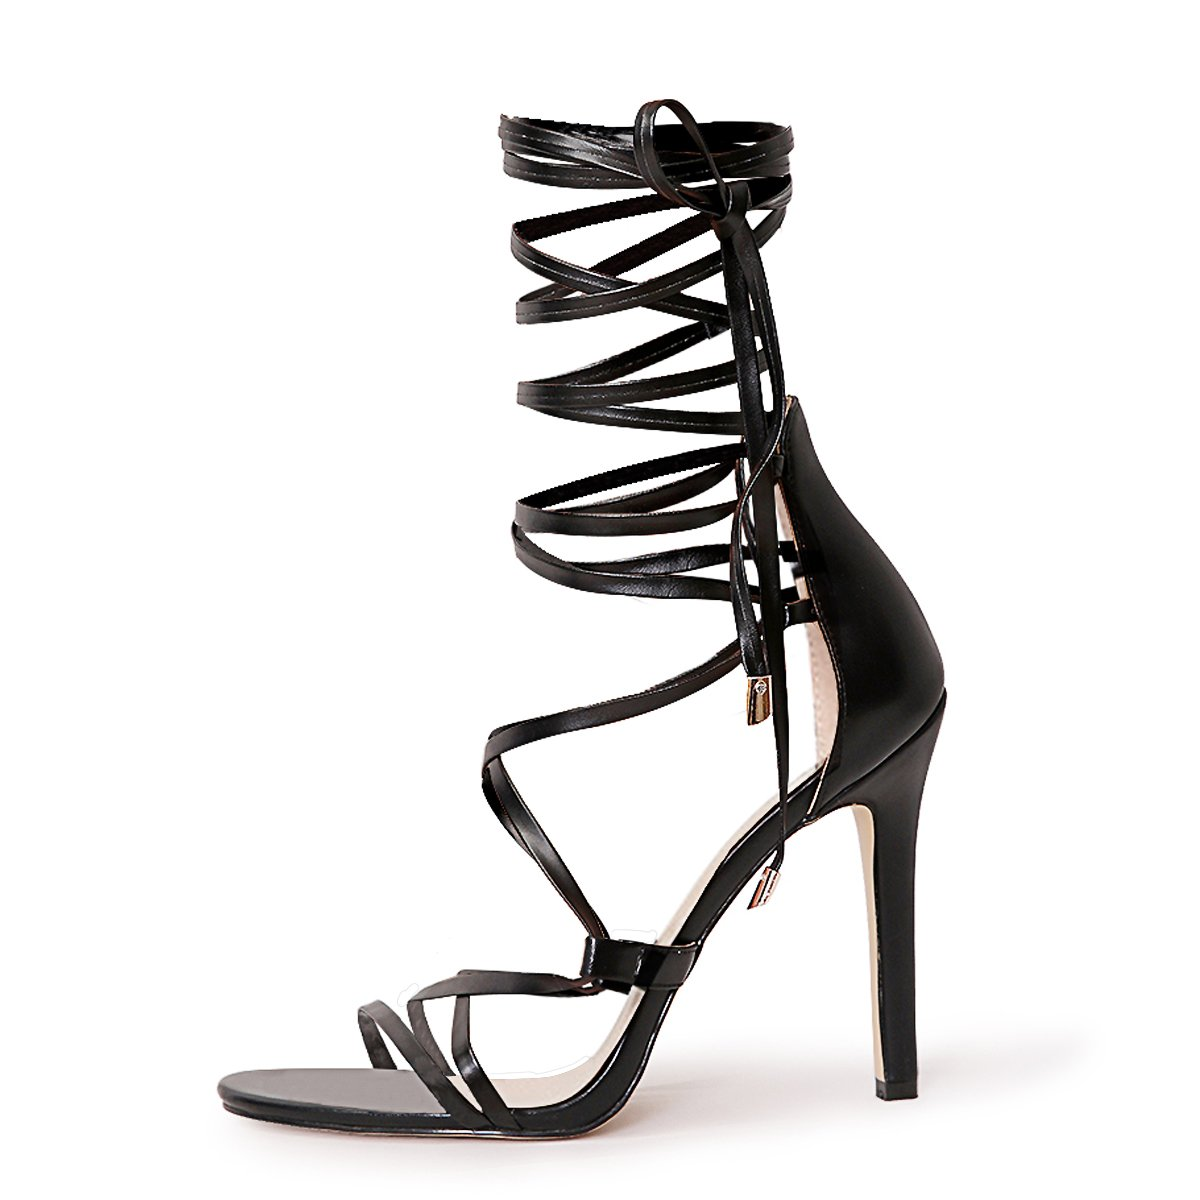 onlymaker Women's Gladiator Ankle Strap Lace up Open Toe Stiletto Harmoni Heeled Strappy Sandals Black 11 M US